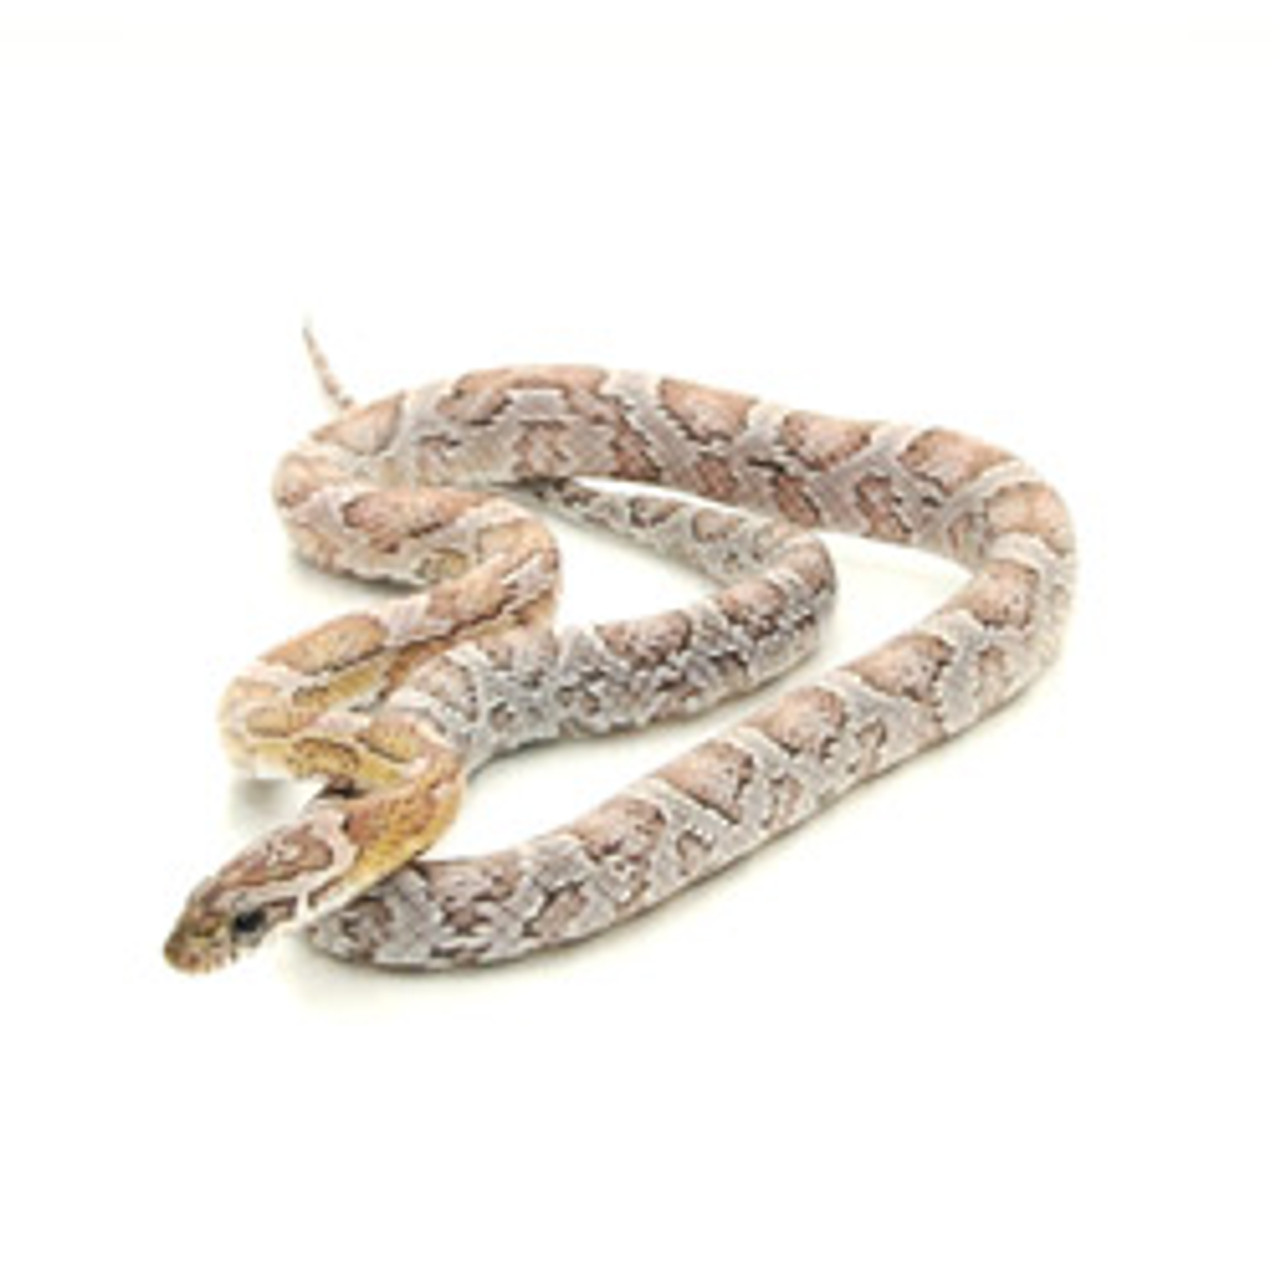 Anery Sunkissed Het Silver Queen Corn Snake (Pantherophis guttata)